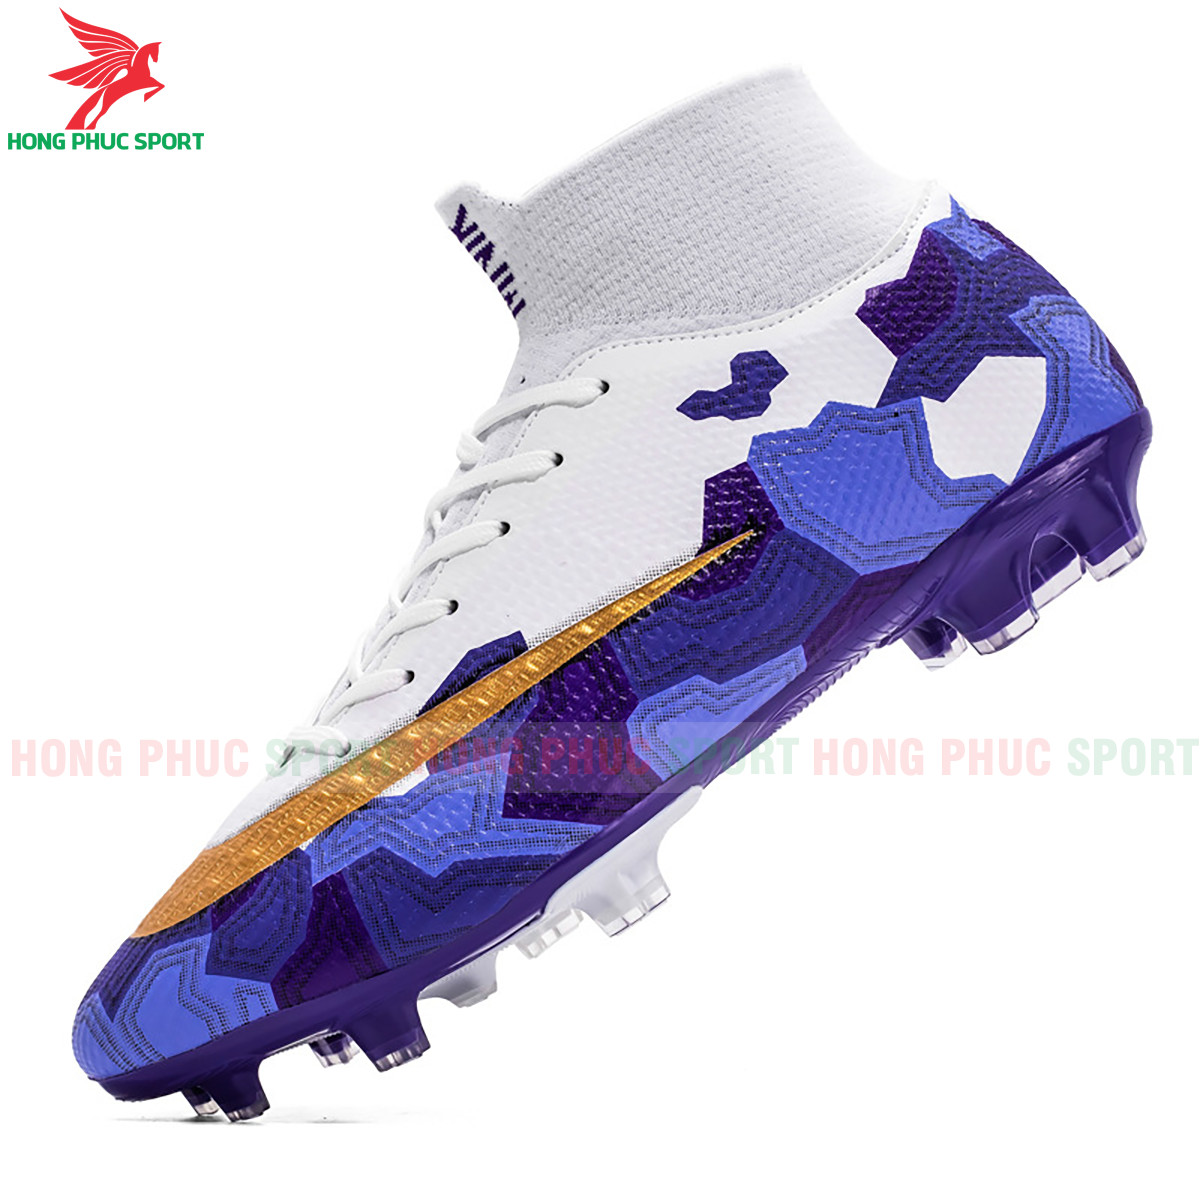 https://cdn.hongphucsport.com/unsafe/s4.shopbay.vn/files/285/giay-co-cao-superfly-7-elite-mbappe-dinh-cao-mau-xanh-duong-2-5f9390eac3634.png